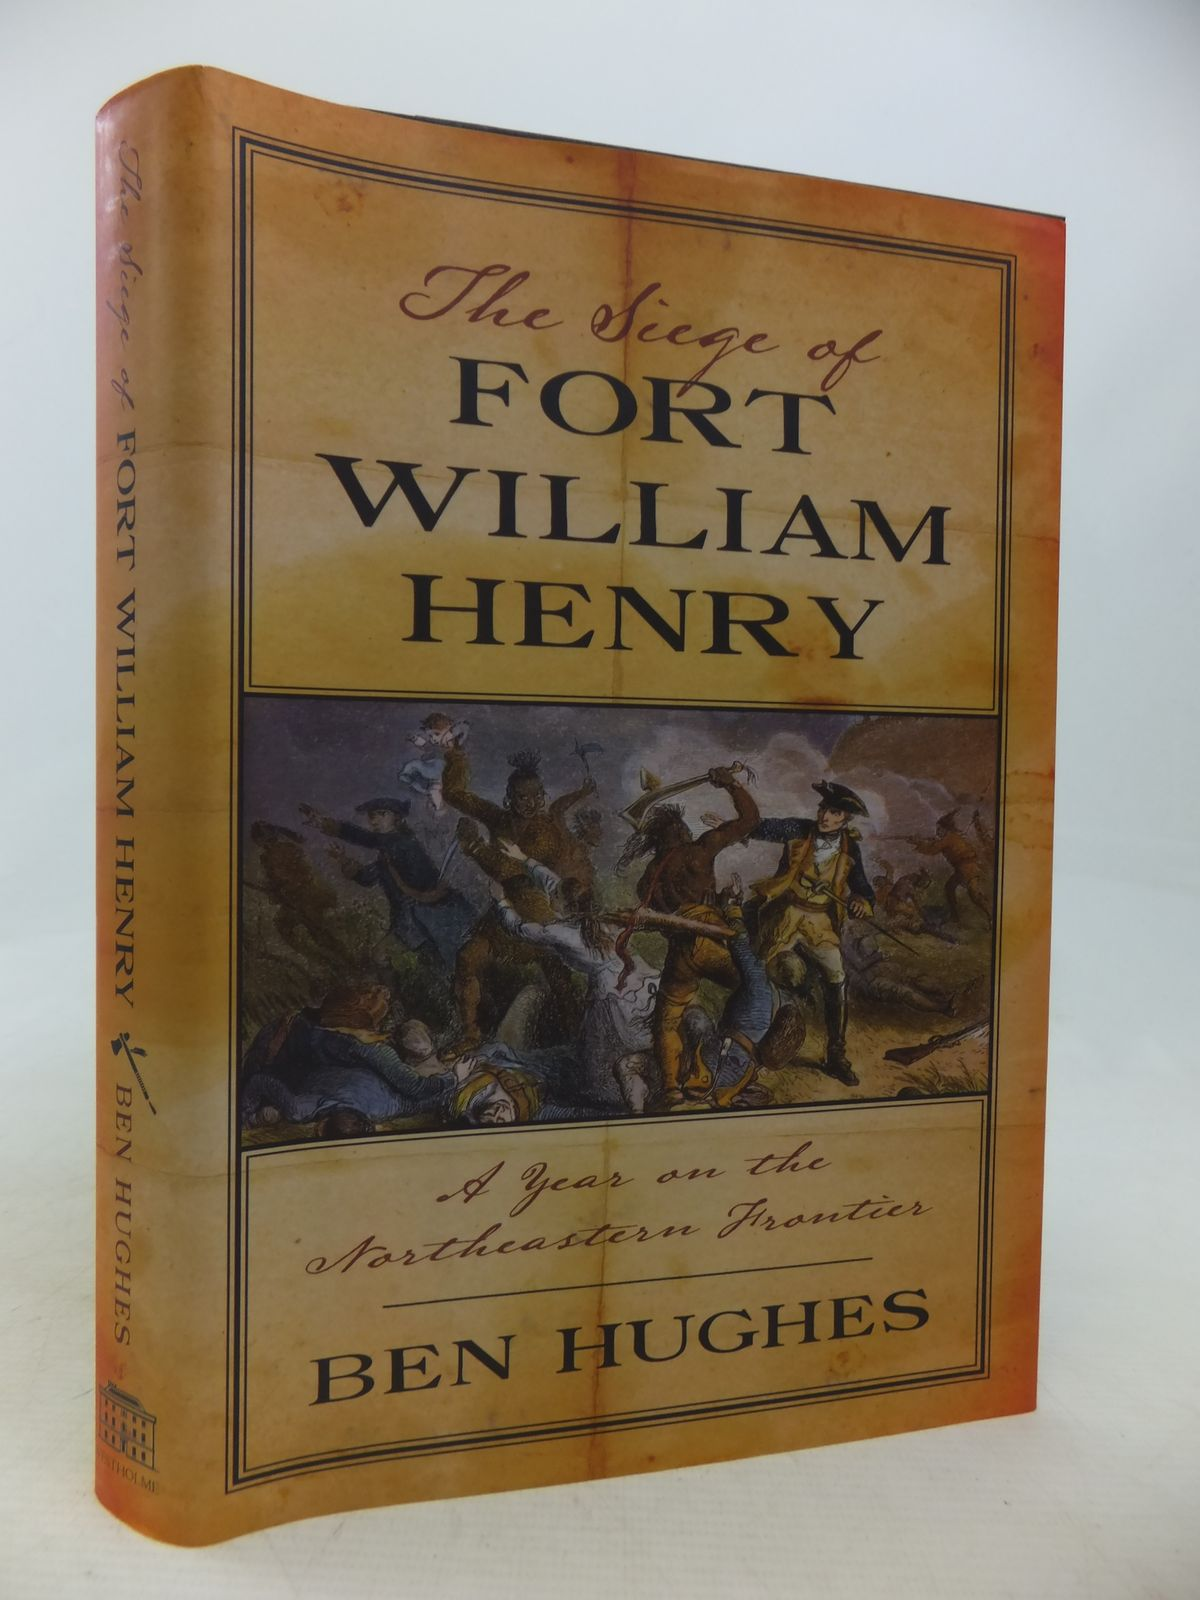 Photo of THE SIEGE OF FORT WILLIAM HENRY A YEAR ON THE NORTHEASTERN FRONTIER